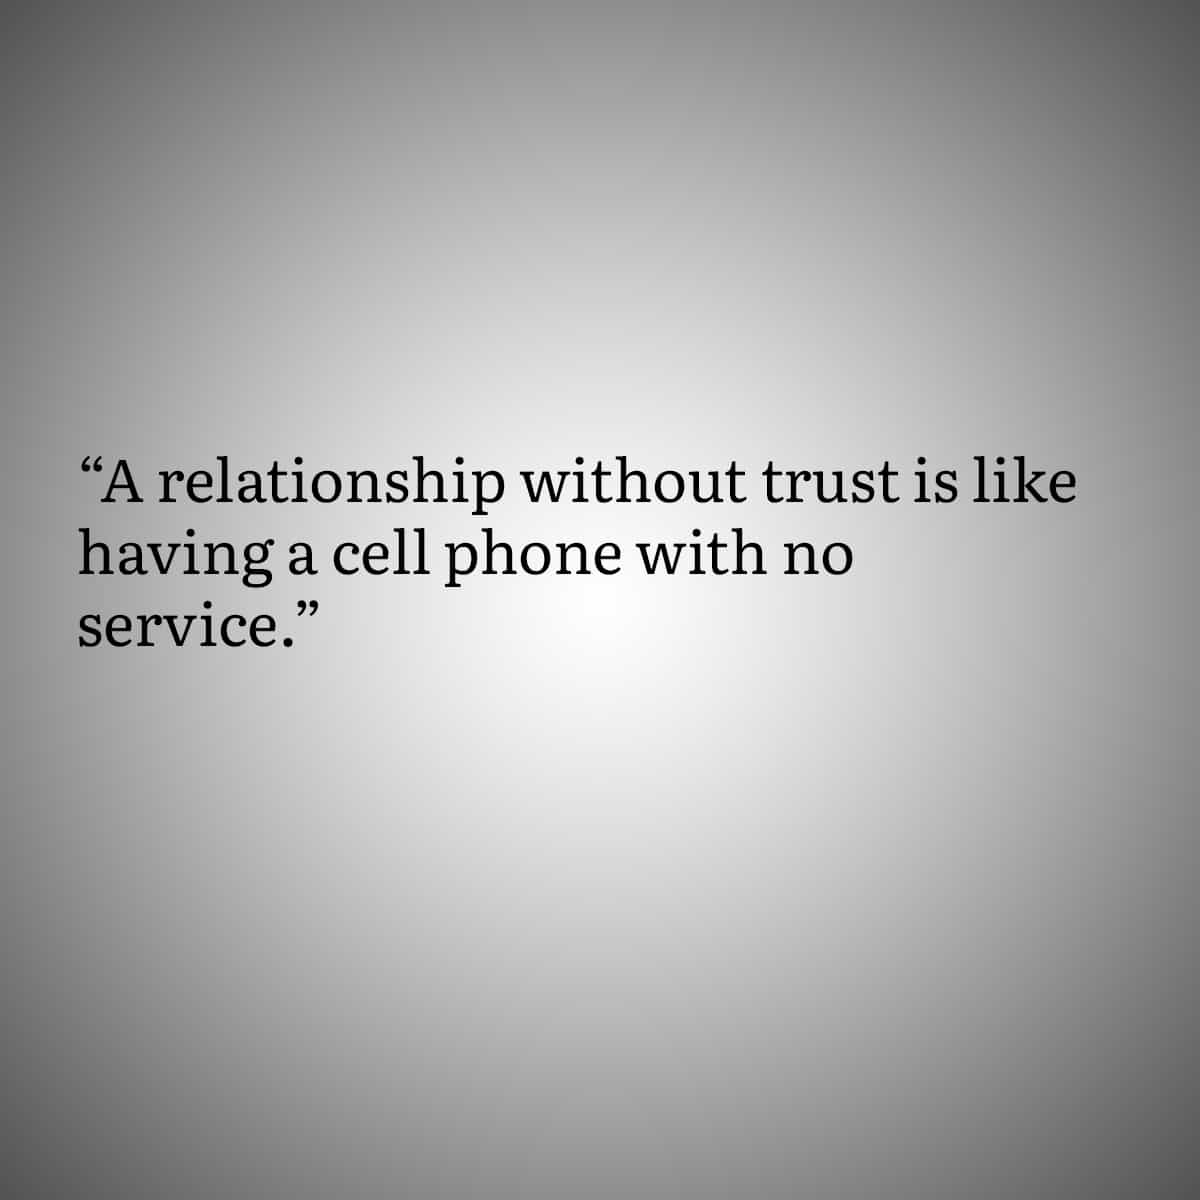 Quotes for people with Trust Issues 3:A relationship without trust is like having a cell phone with no service.